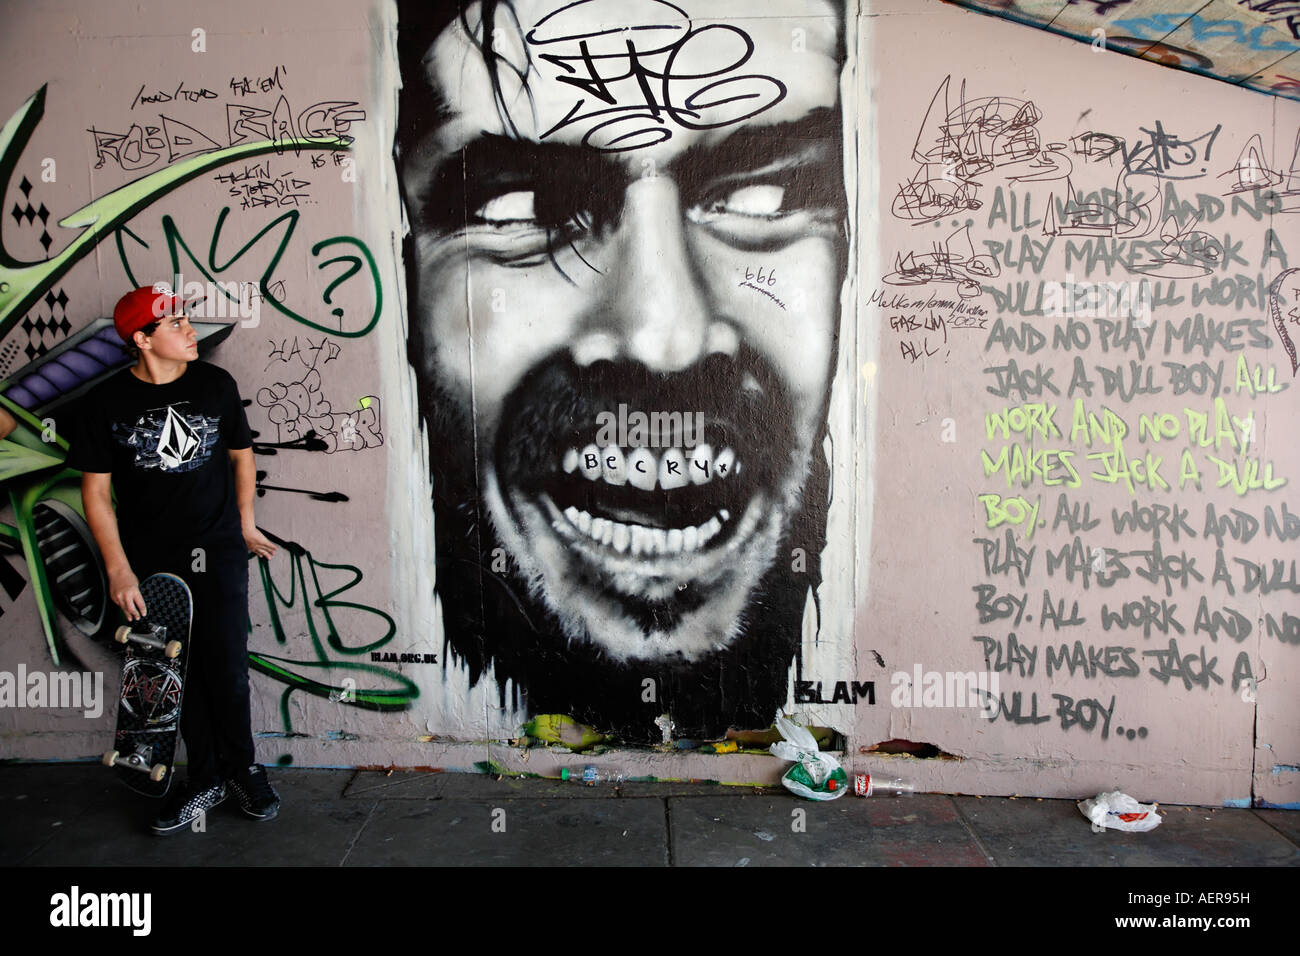 The Shining Grafitti And Skateboarder At The Skateboard Center The South Bank London UK Europe Southbank - Stock Image